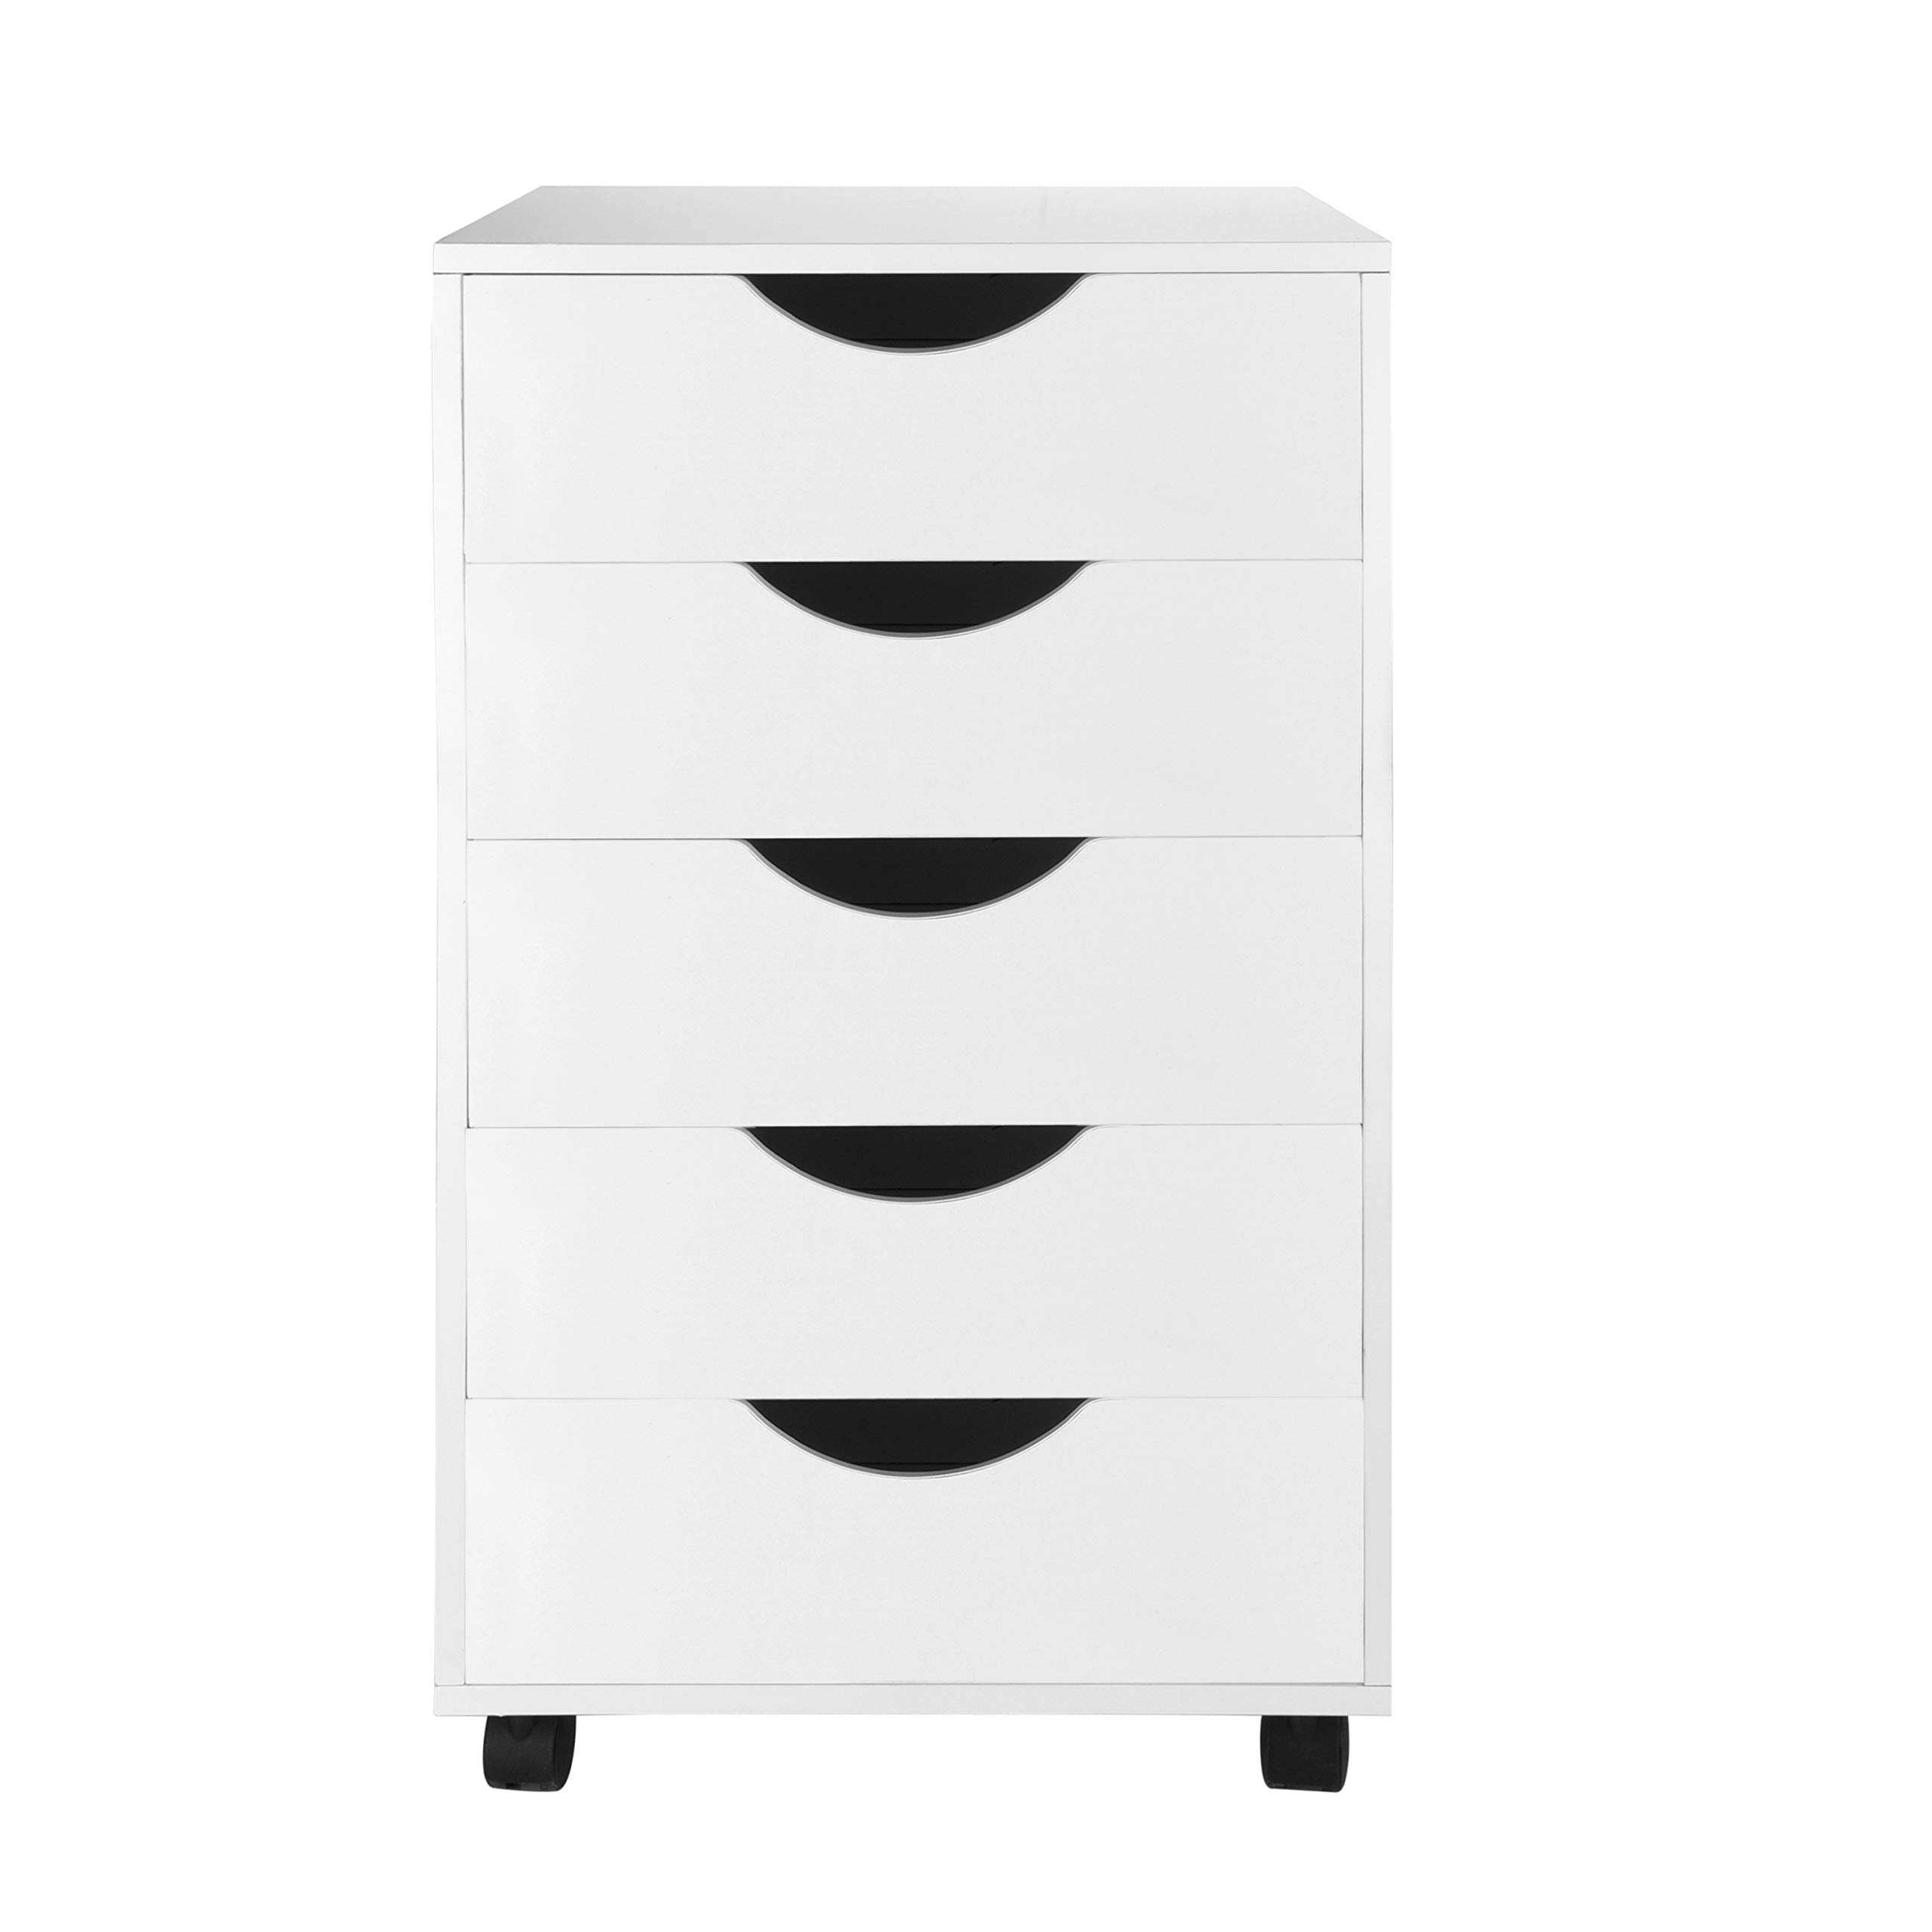 eMerit 5 Drawer Wood File Cabinet Roll Cart Drawer for Office Organization White by EMERIT (Image #2)